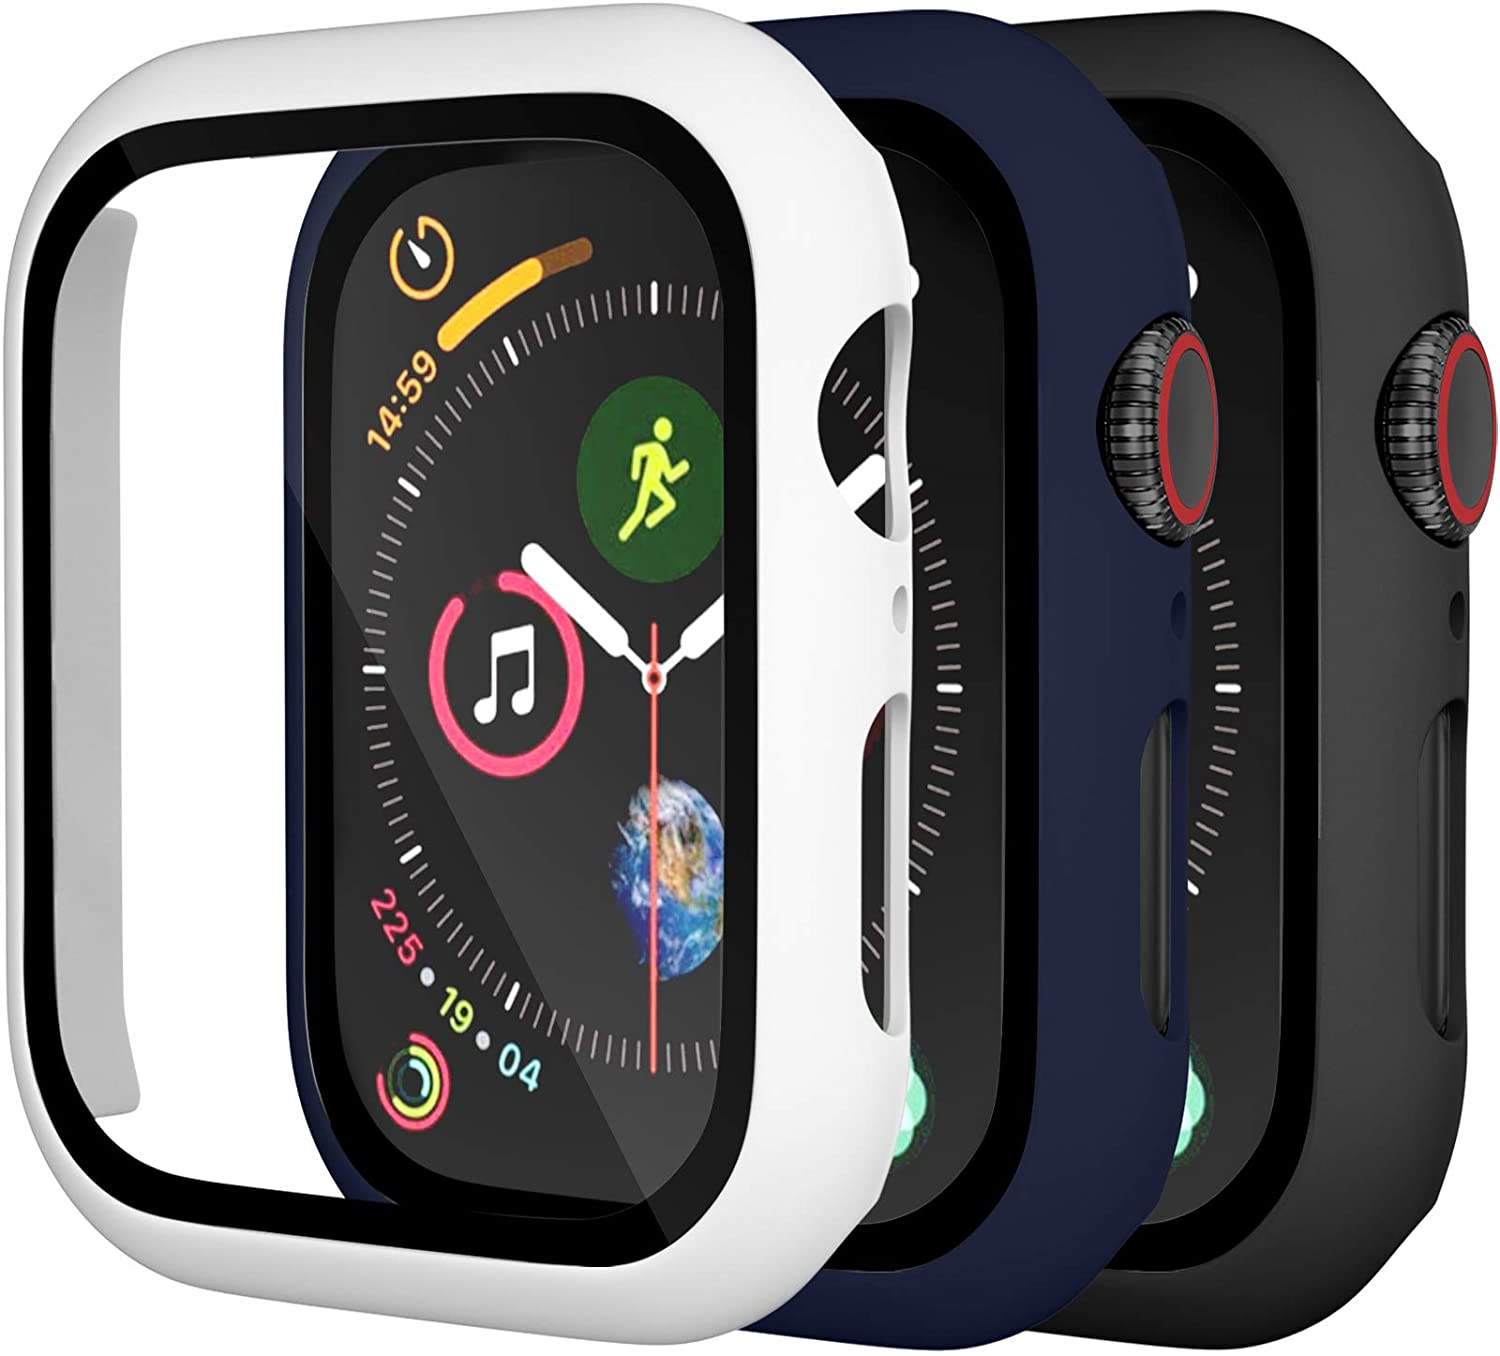 [3 Pack] Charlam Case Compatible with Apple Watch 40mm SE iWatch Series 6 5 4 with Screen Protector, All-Around Ultra-Thin Bumper Full Cover Hard PC Protective Case, Black, Navy Blue, White, 3 Pack